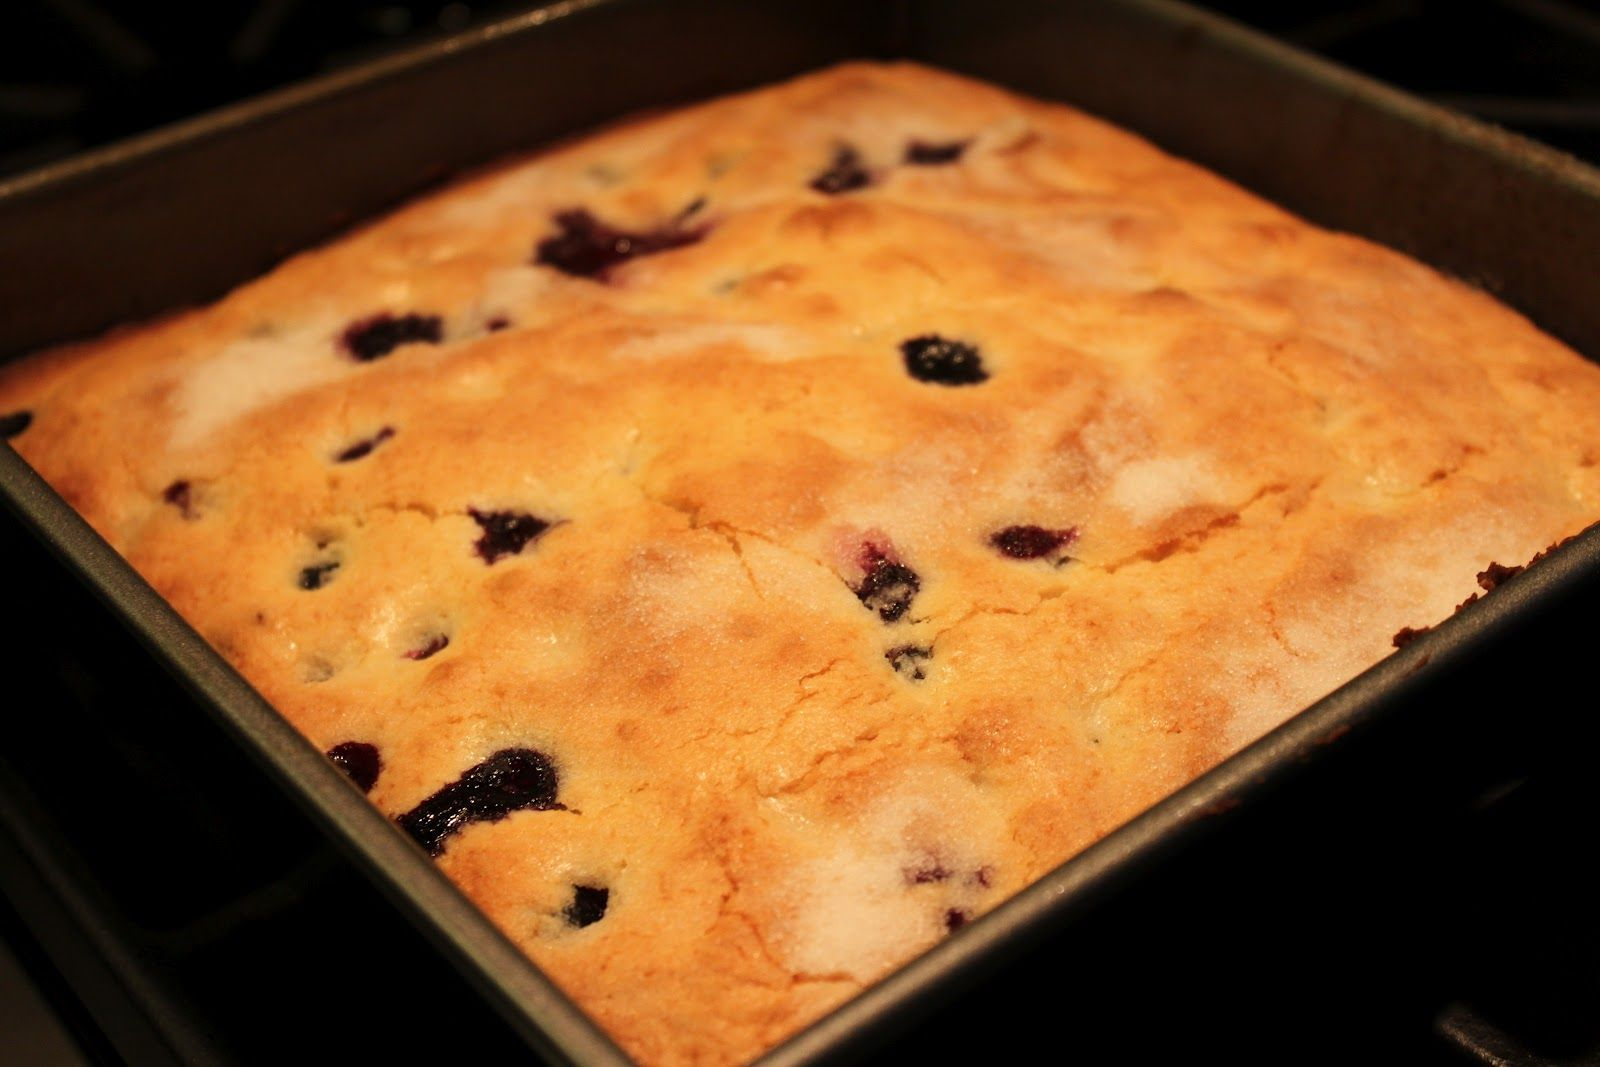 A Southerners Notebook: Buttermilk-Blueberry Breakfast Cake #buttermilkblueberrybreakfastcake A Southerners Notebook: Buttermilk-Blueberry Breakfast Cake #buttermilkblueberrybreakfastcake A Southerners Notebook: Buttermilk-Blueberry Breakfast Cake #buttermilkblueberrybreakfastcake A Southerners Notebook: Buttermilk-Blueberry Breakfast Cake #buttermilkblueberrybreakfastcake